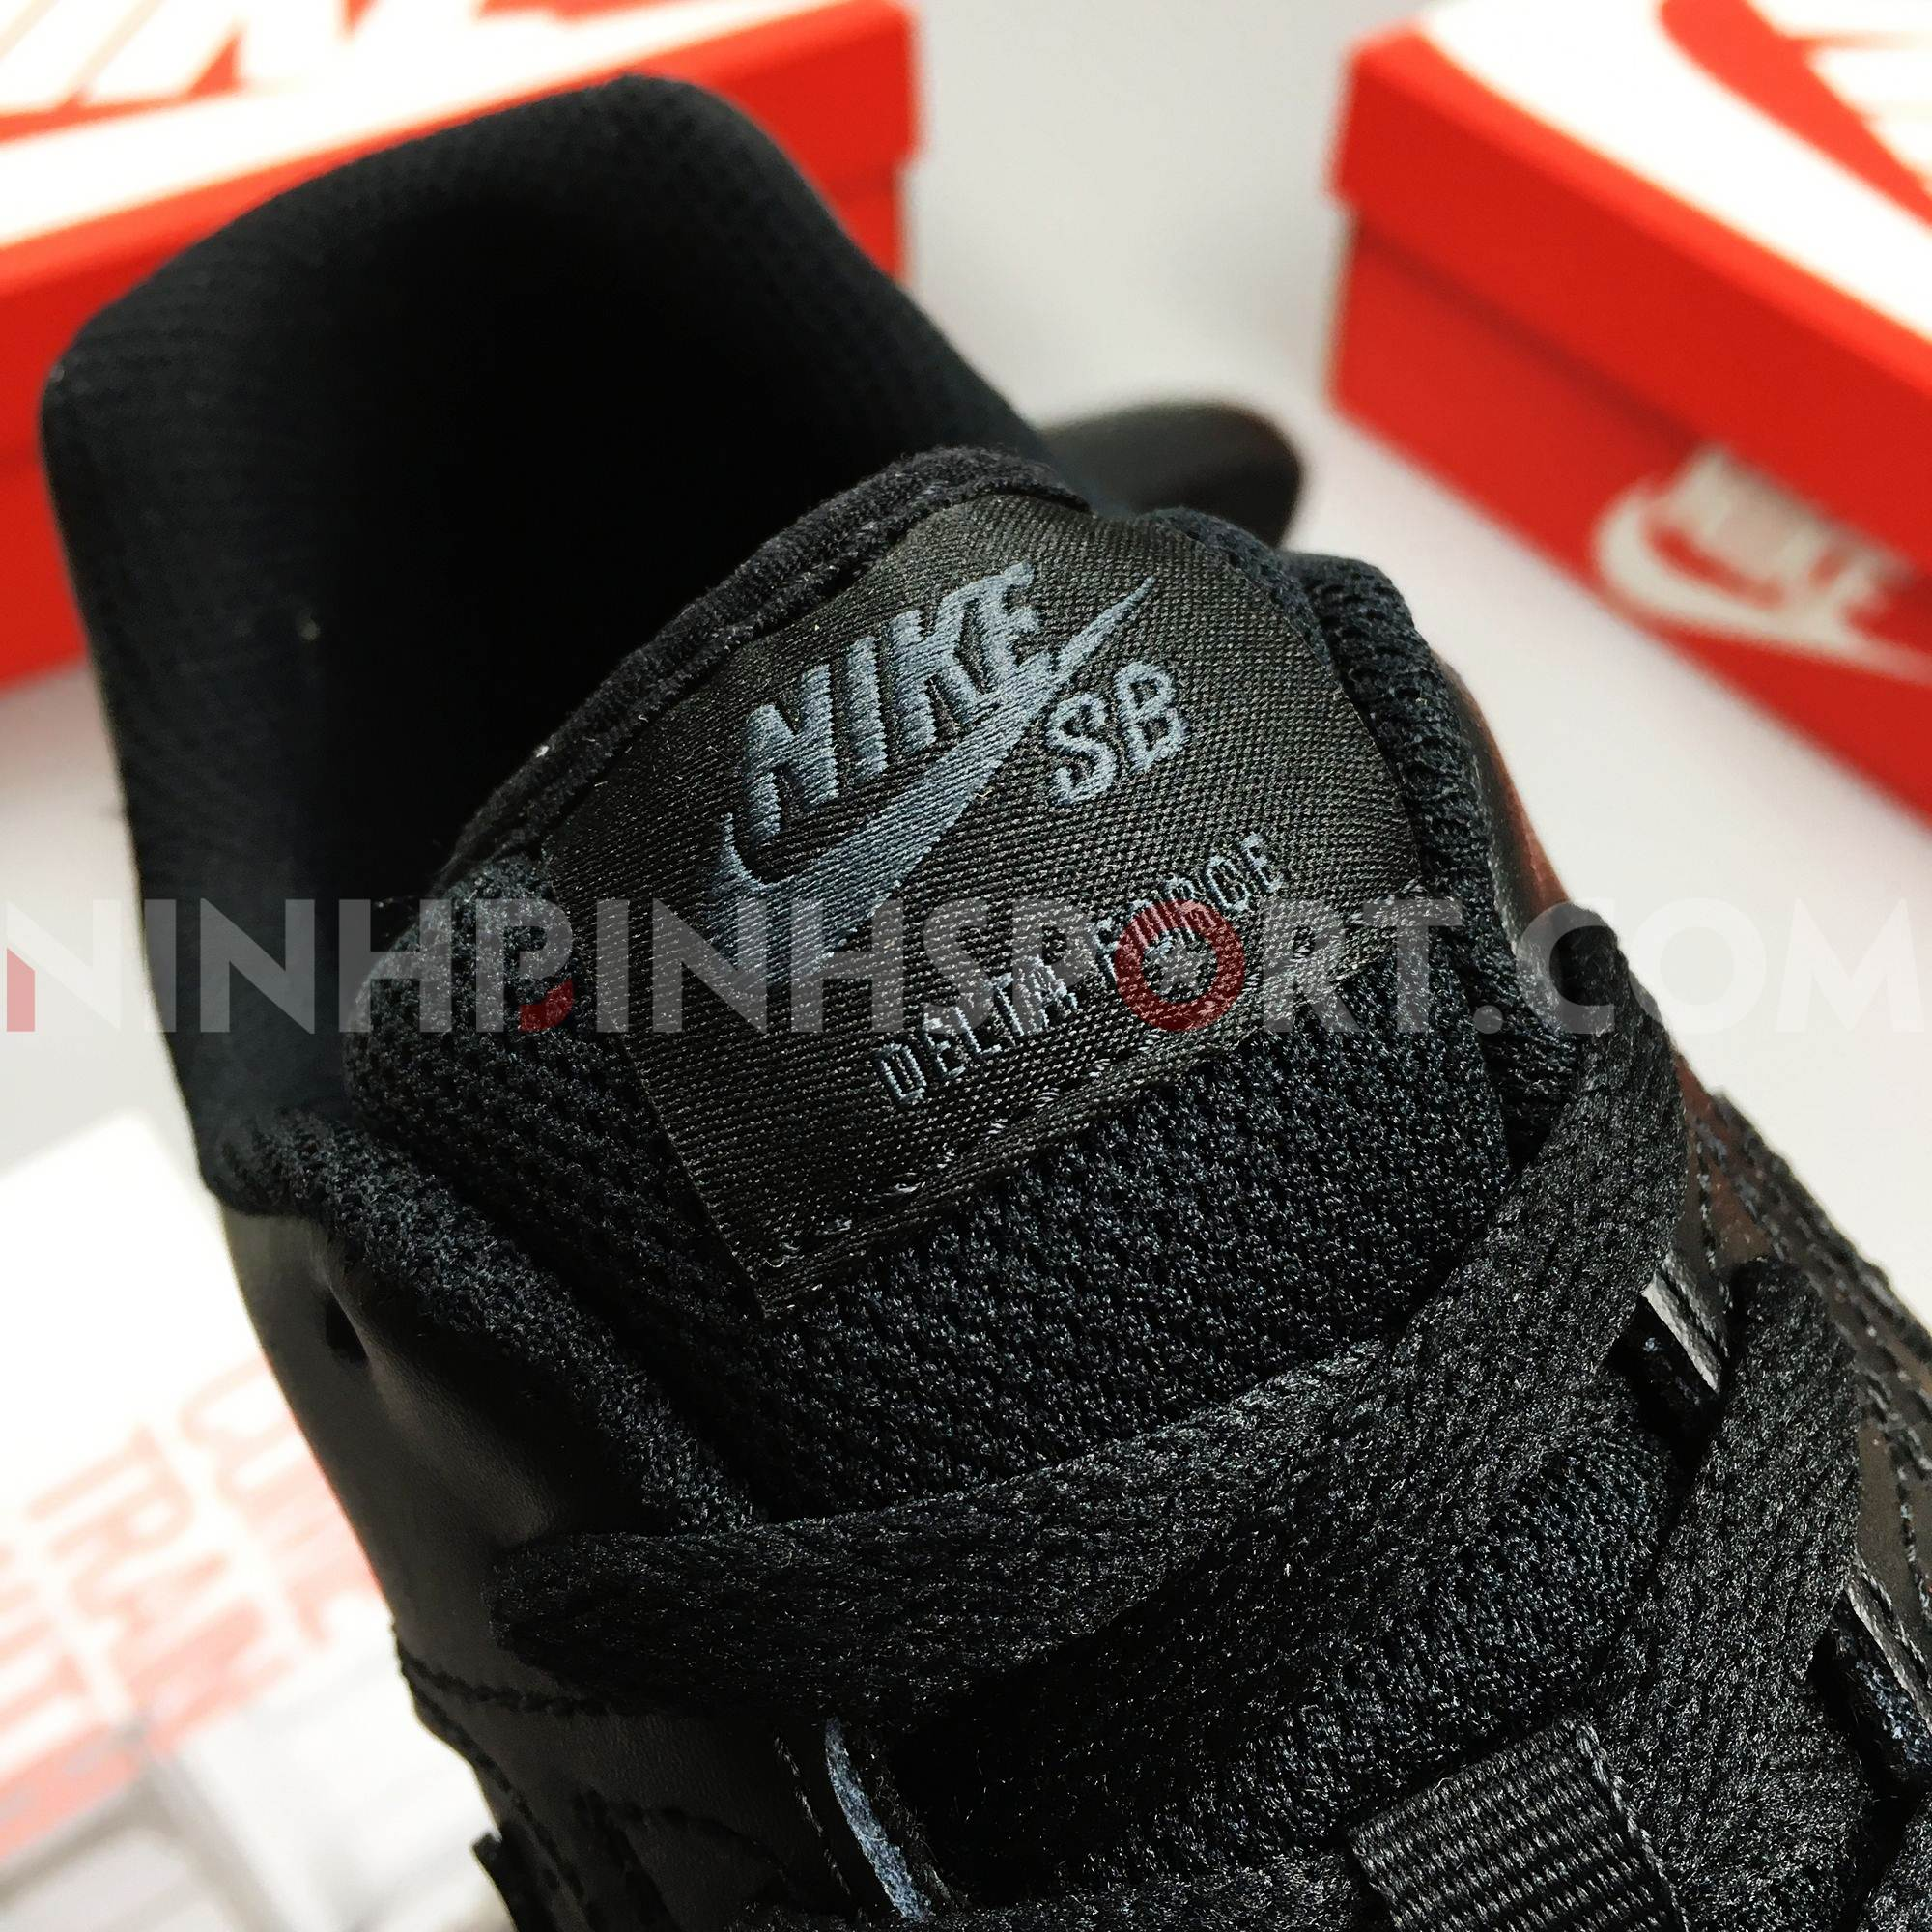 Giầy thể thao nam Nike SB Delta Force Vulc 942237-002